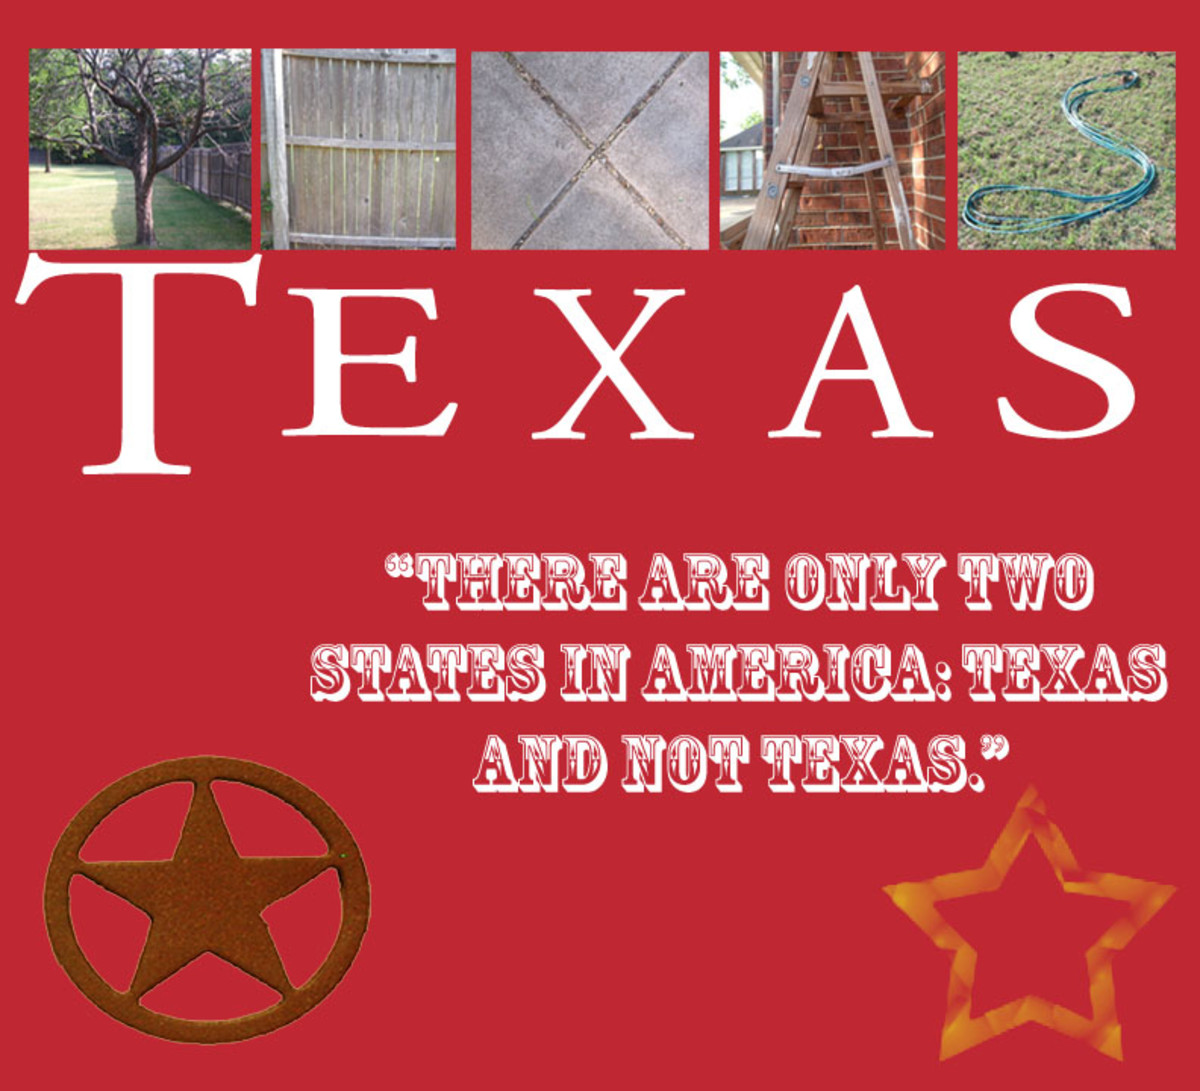 I made this one using photographs of everyday items to spell out the word Texas. I added a funny little quote then uploaded some Google Image pics.